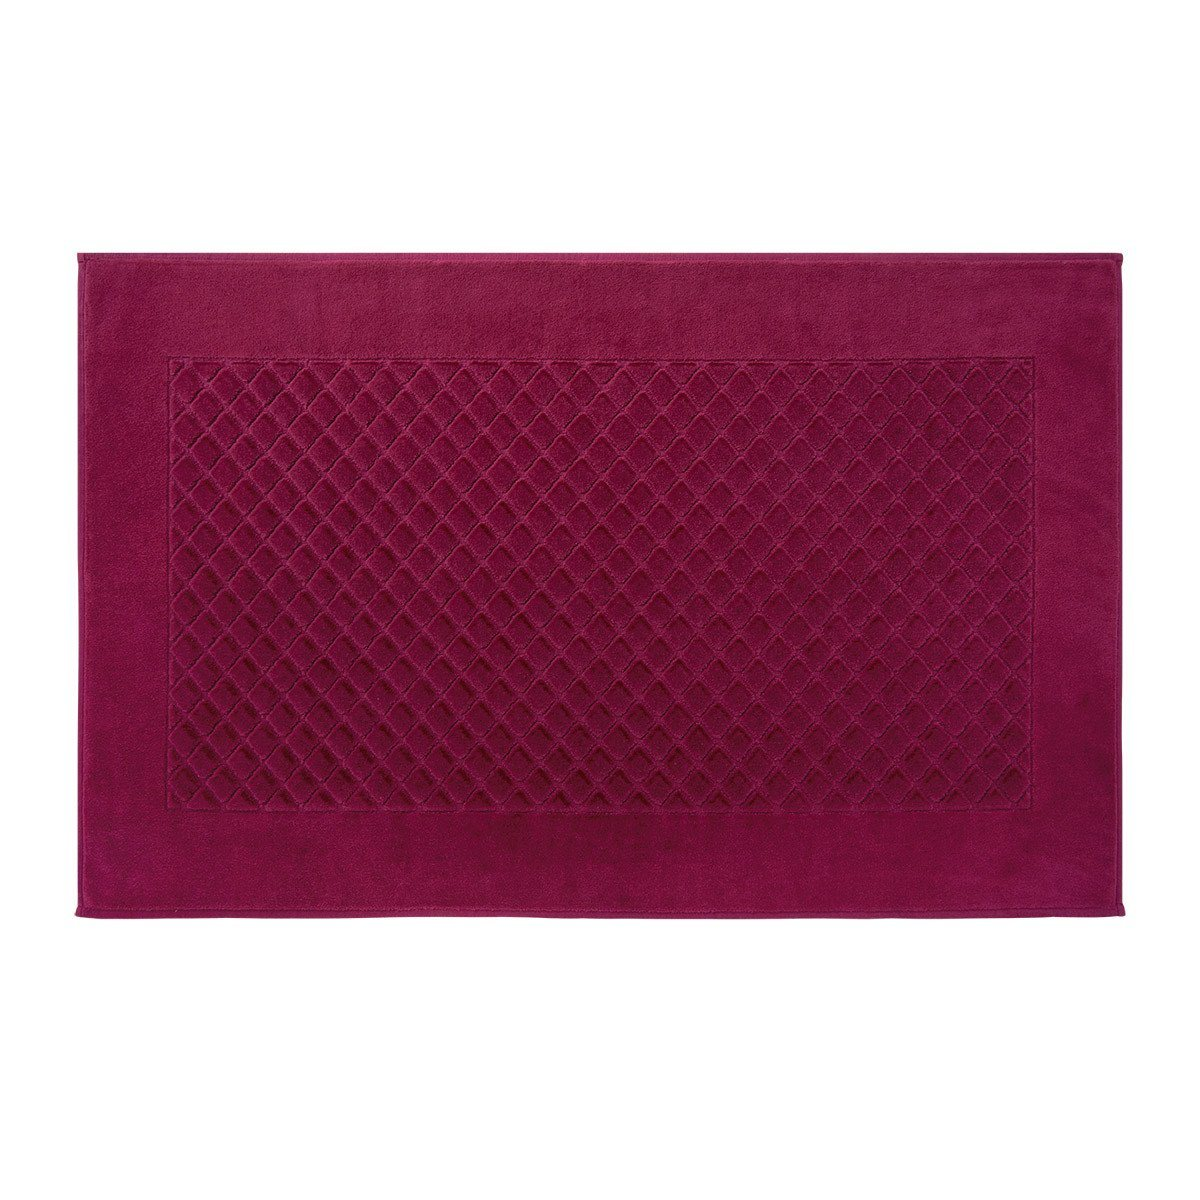 Fig Linens - Etoile Cerise Cranberry Bath Mat by Yves Delorme